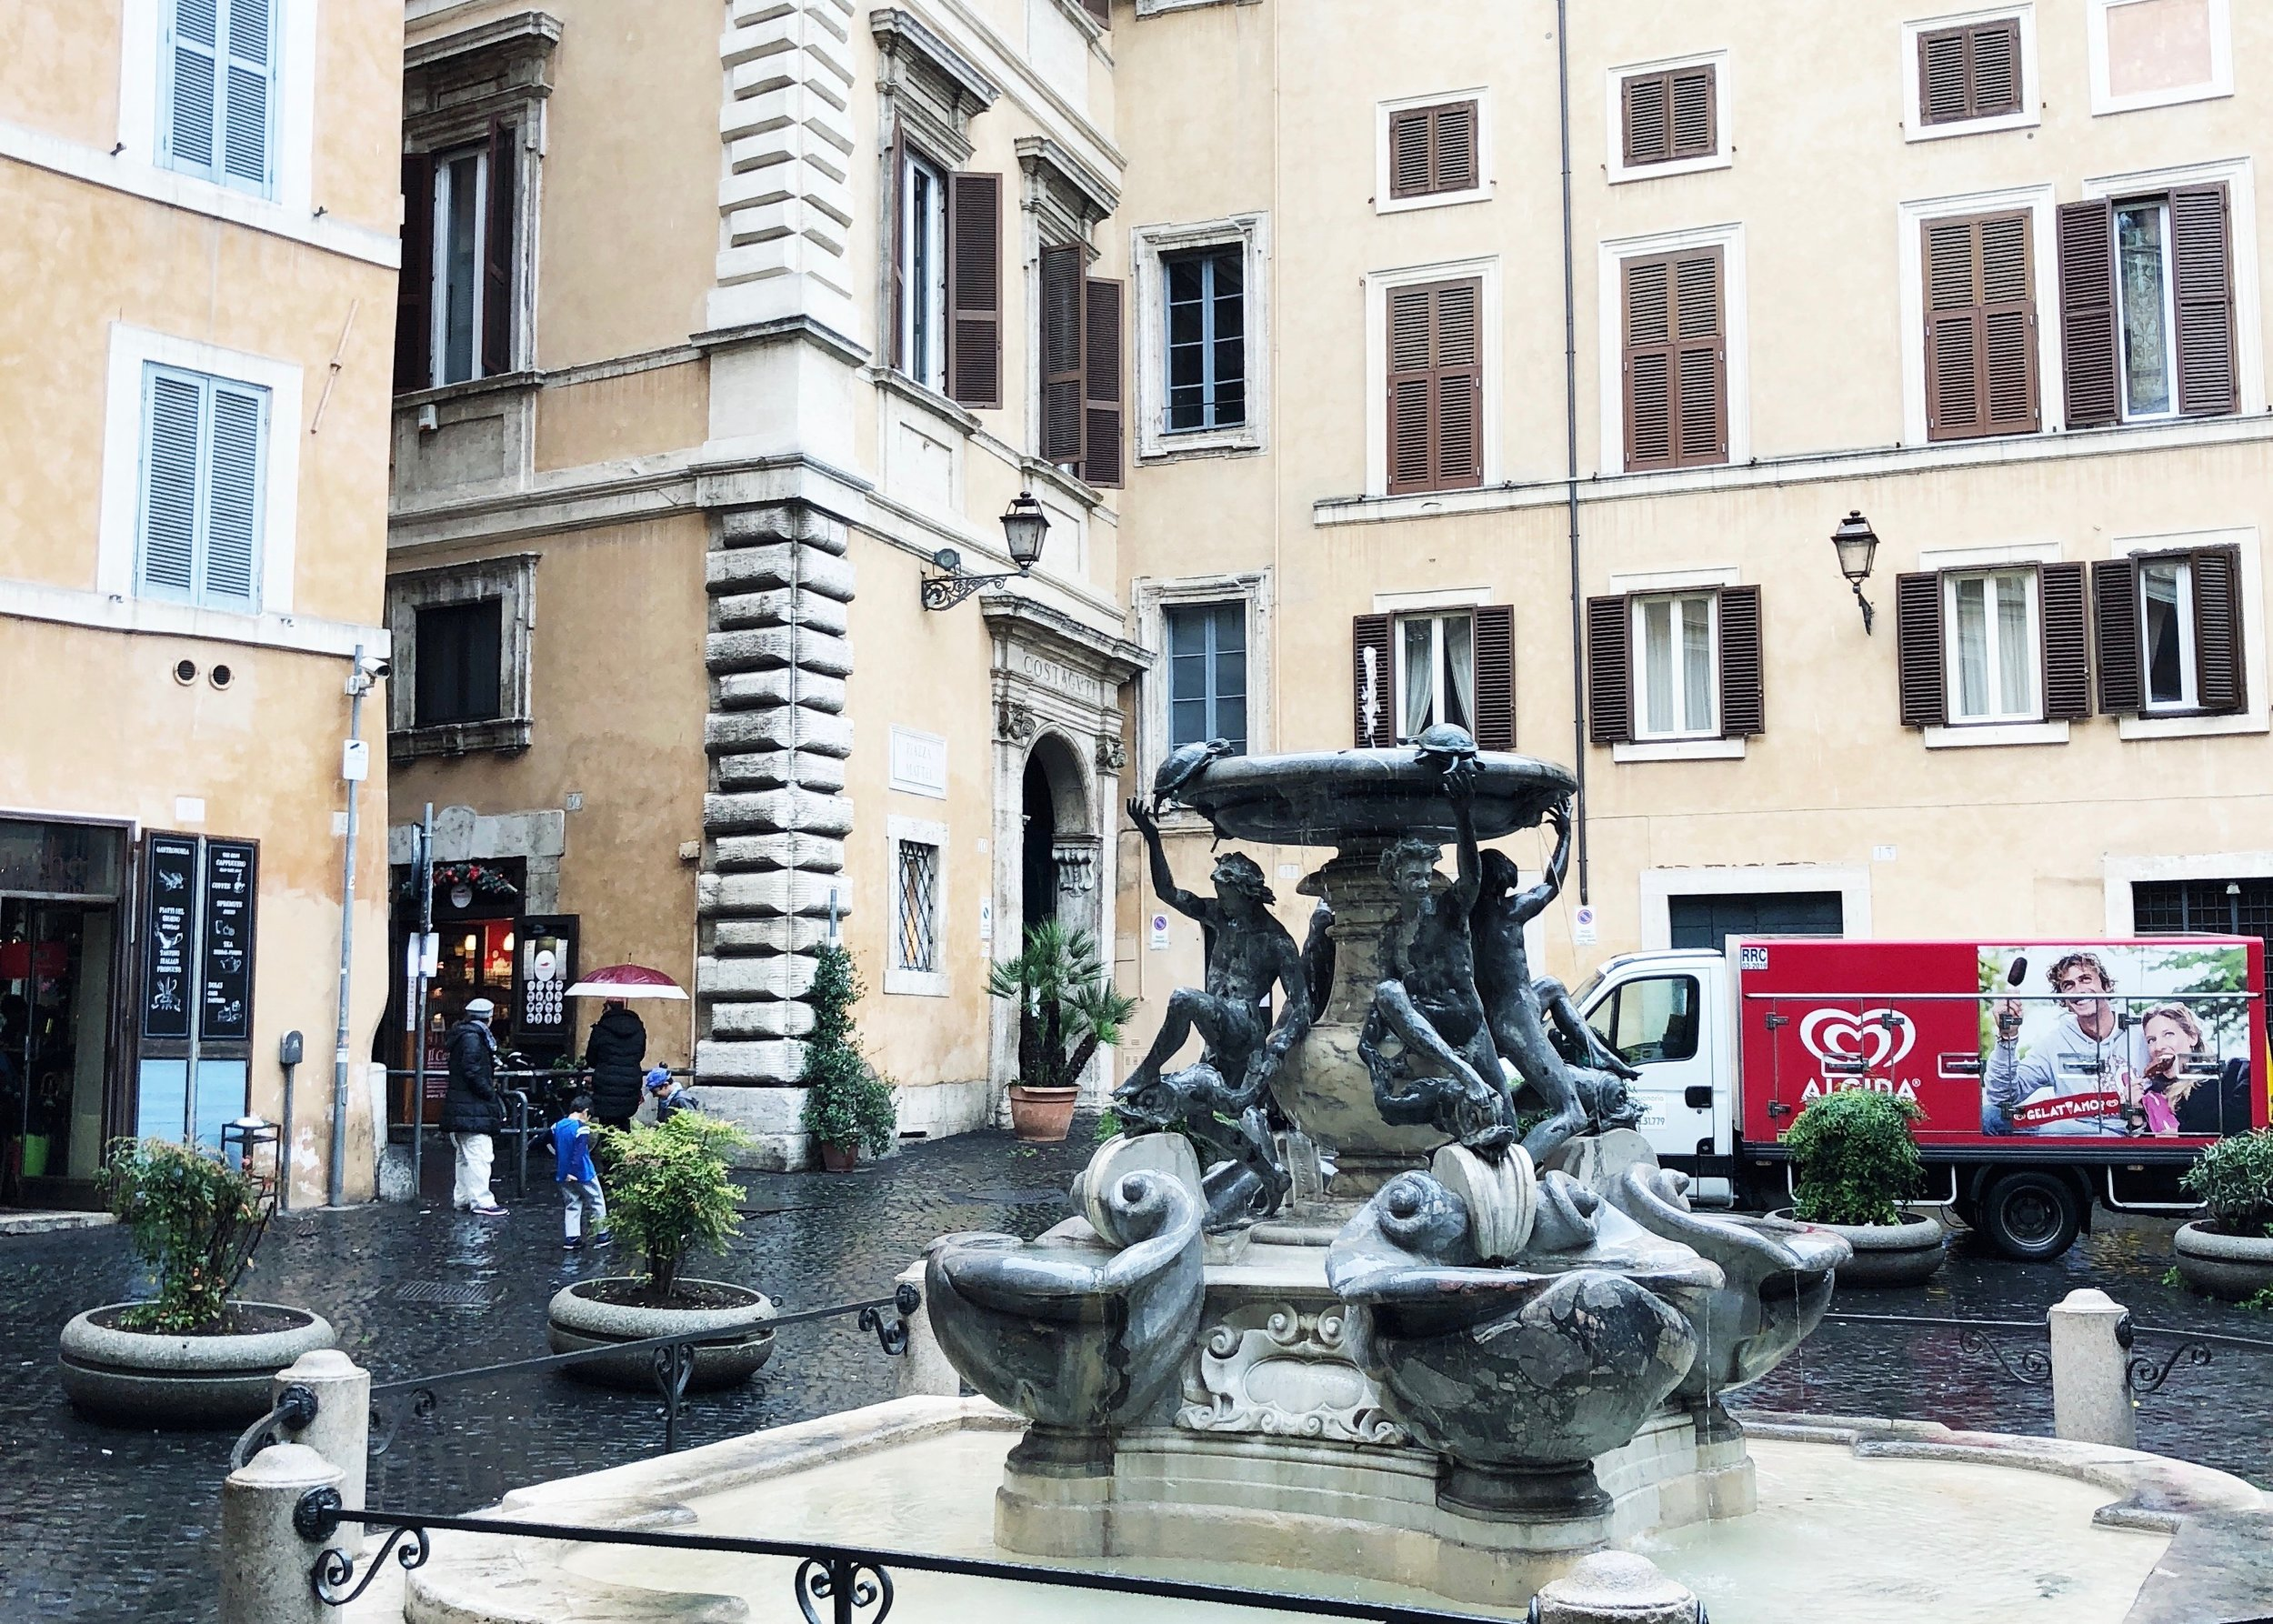 Fontana delle Tartarughe with Palazzo Costaguti entrance in the background.